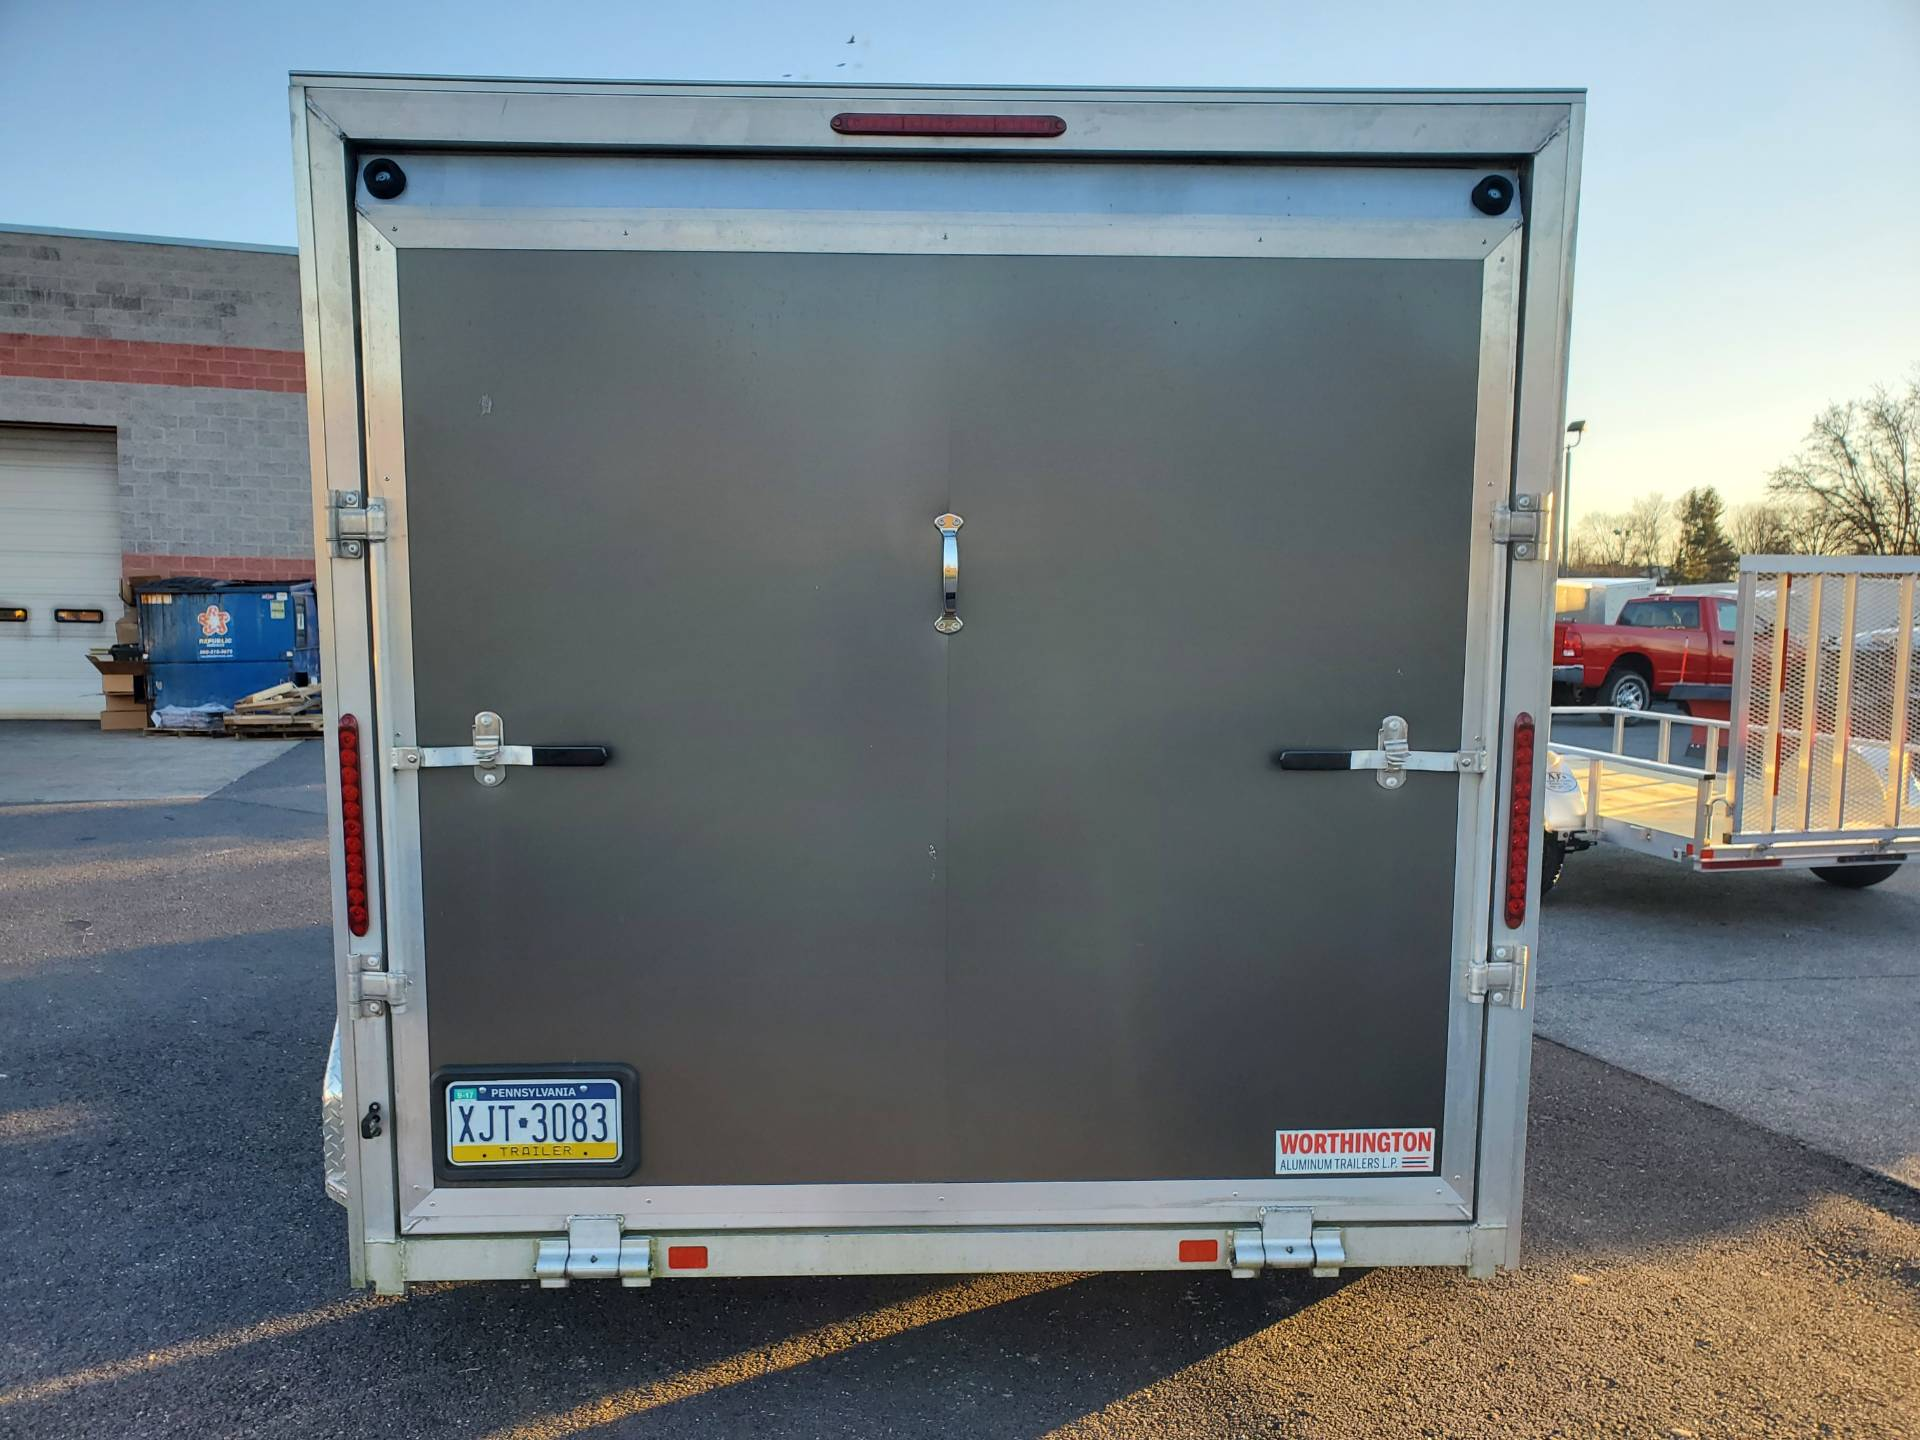 2016 USED UNITS Used Worthington 7x12 Aluminum Cargo Trailer in Harrisburg, Pennsylvania - Photo 7